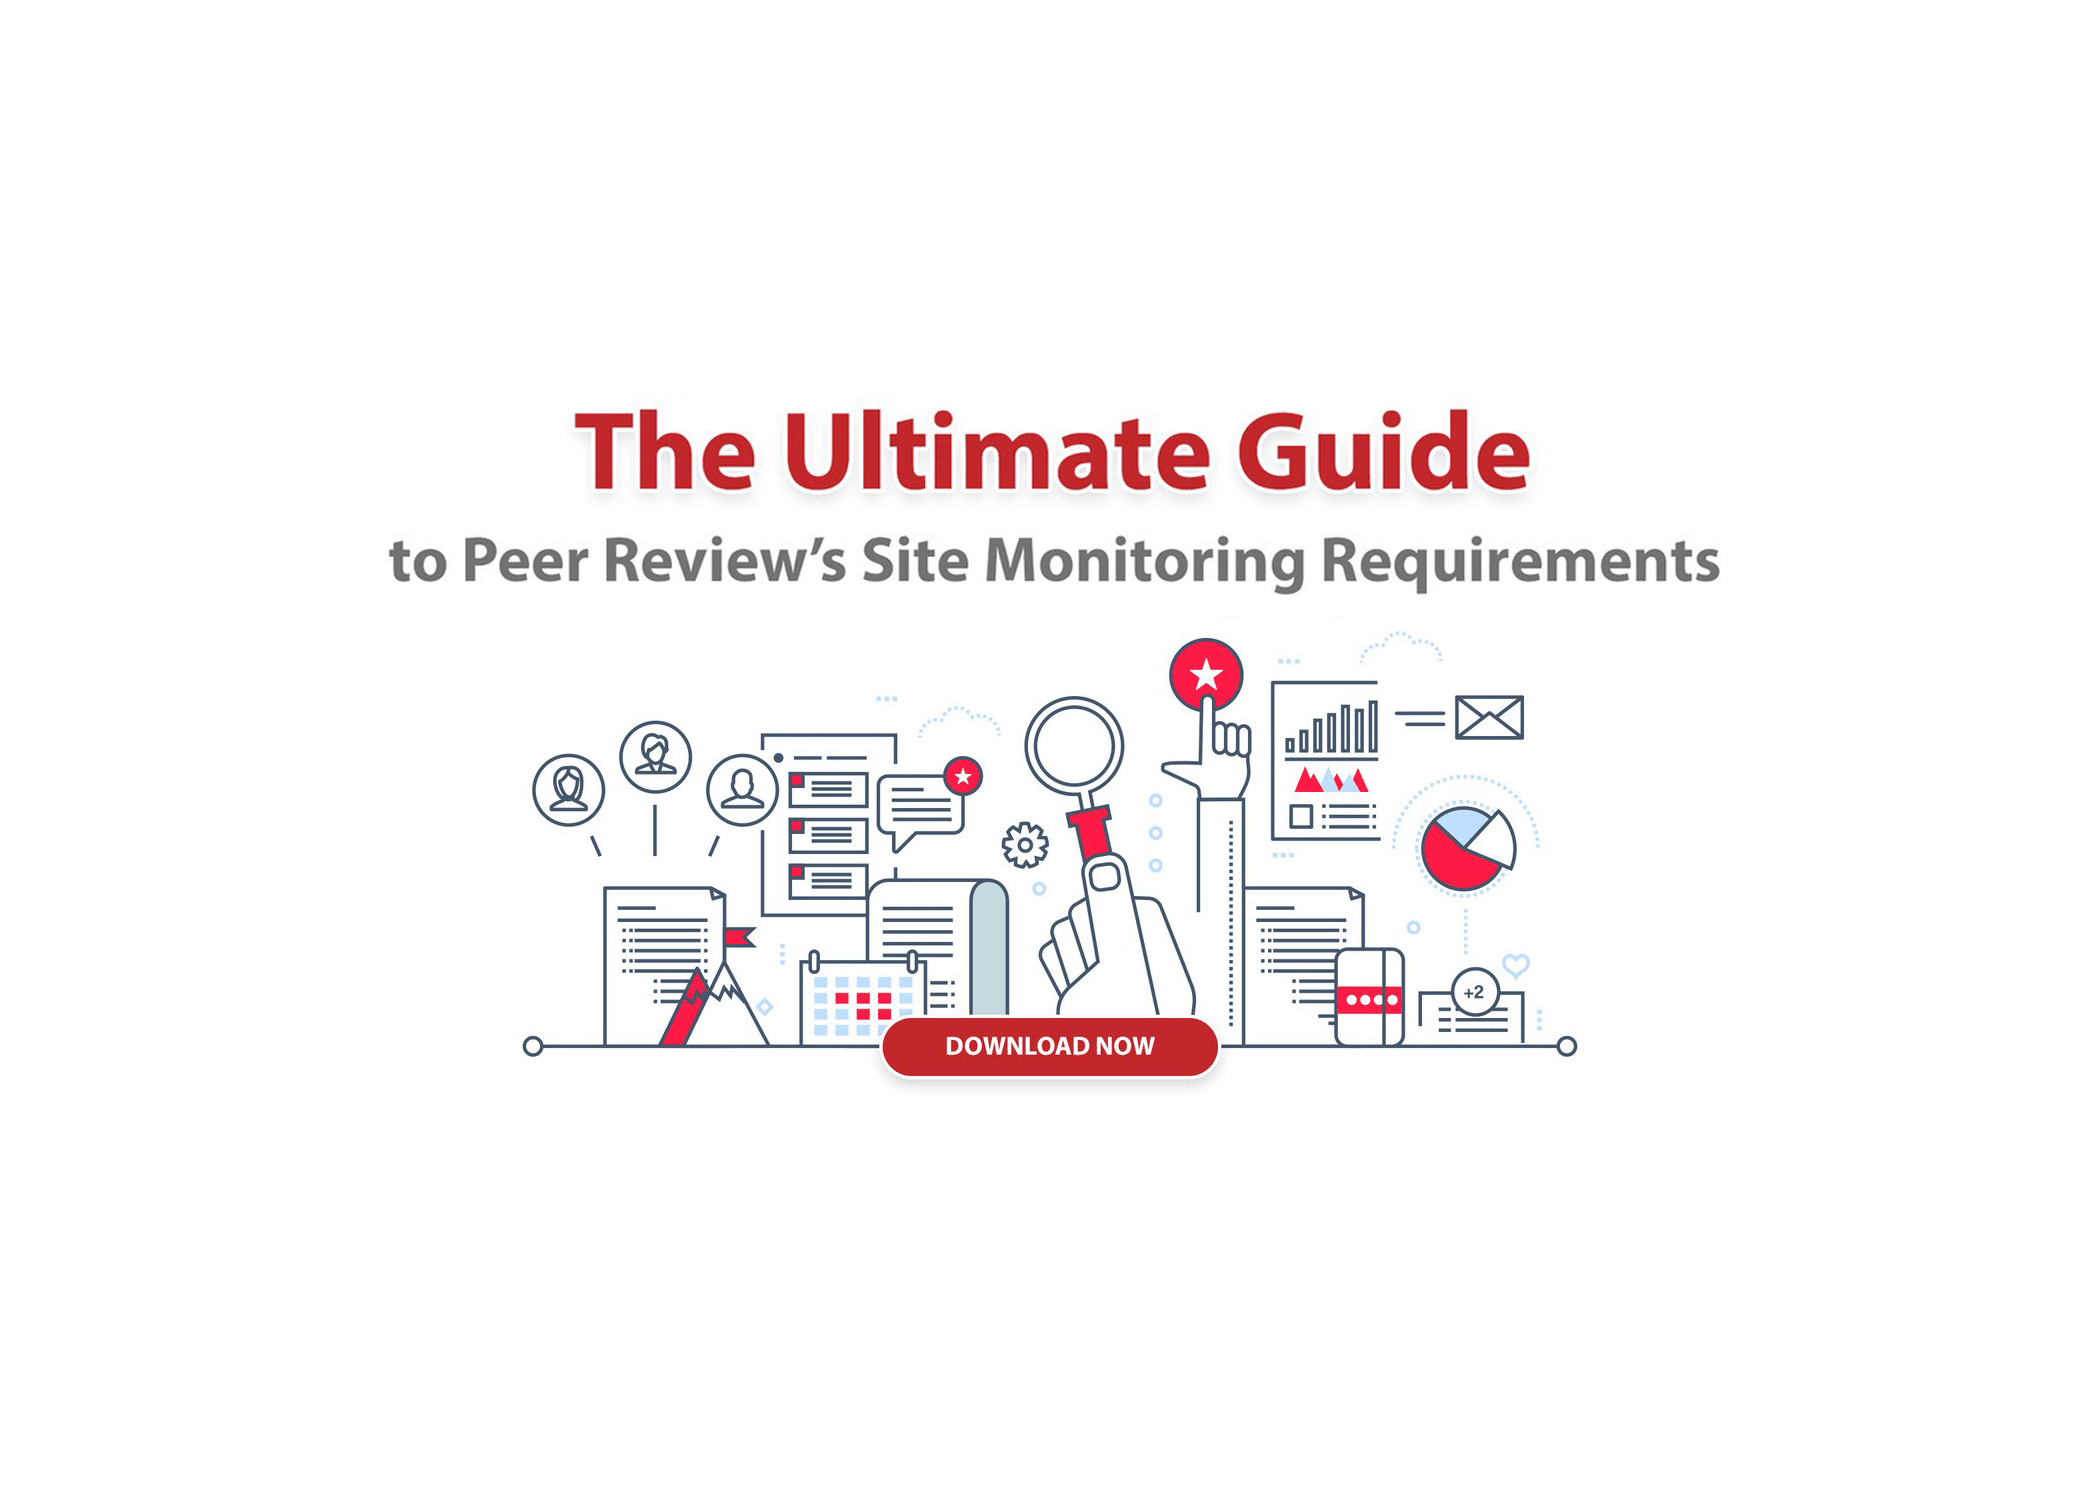 The Ultimate Guide to Peer Review's Site Monitoring Requirements - Download Now | Caveon Test Security